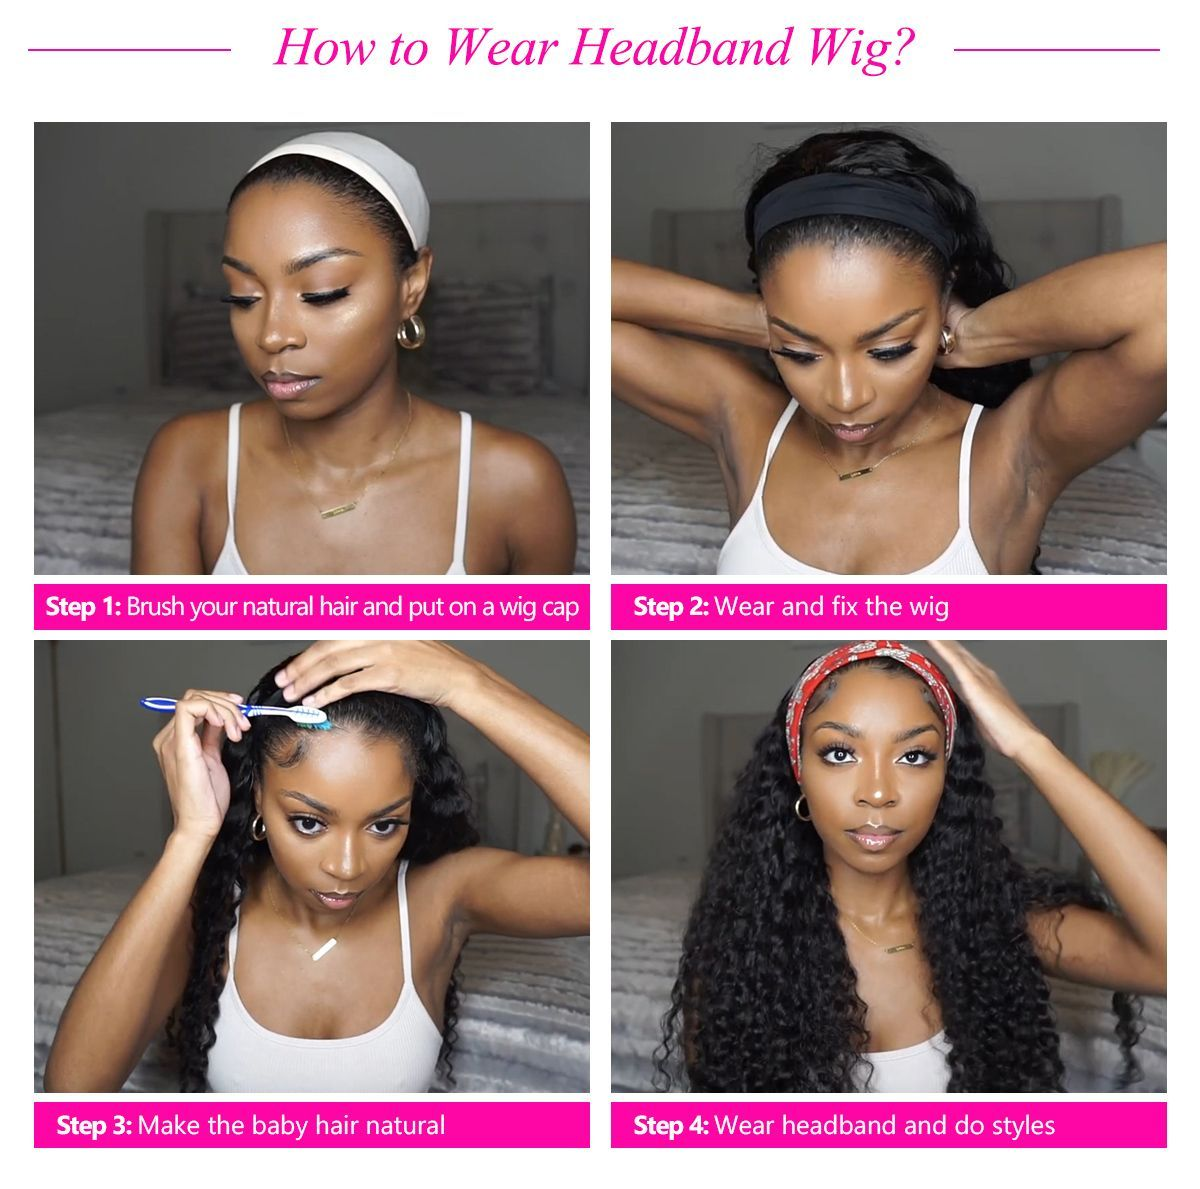 How to wear headband wig